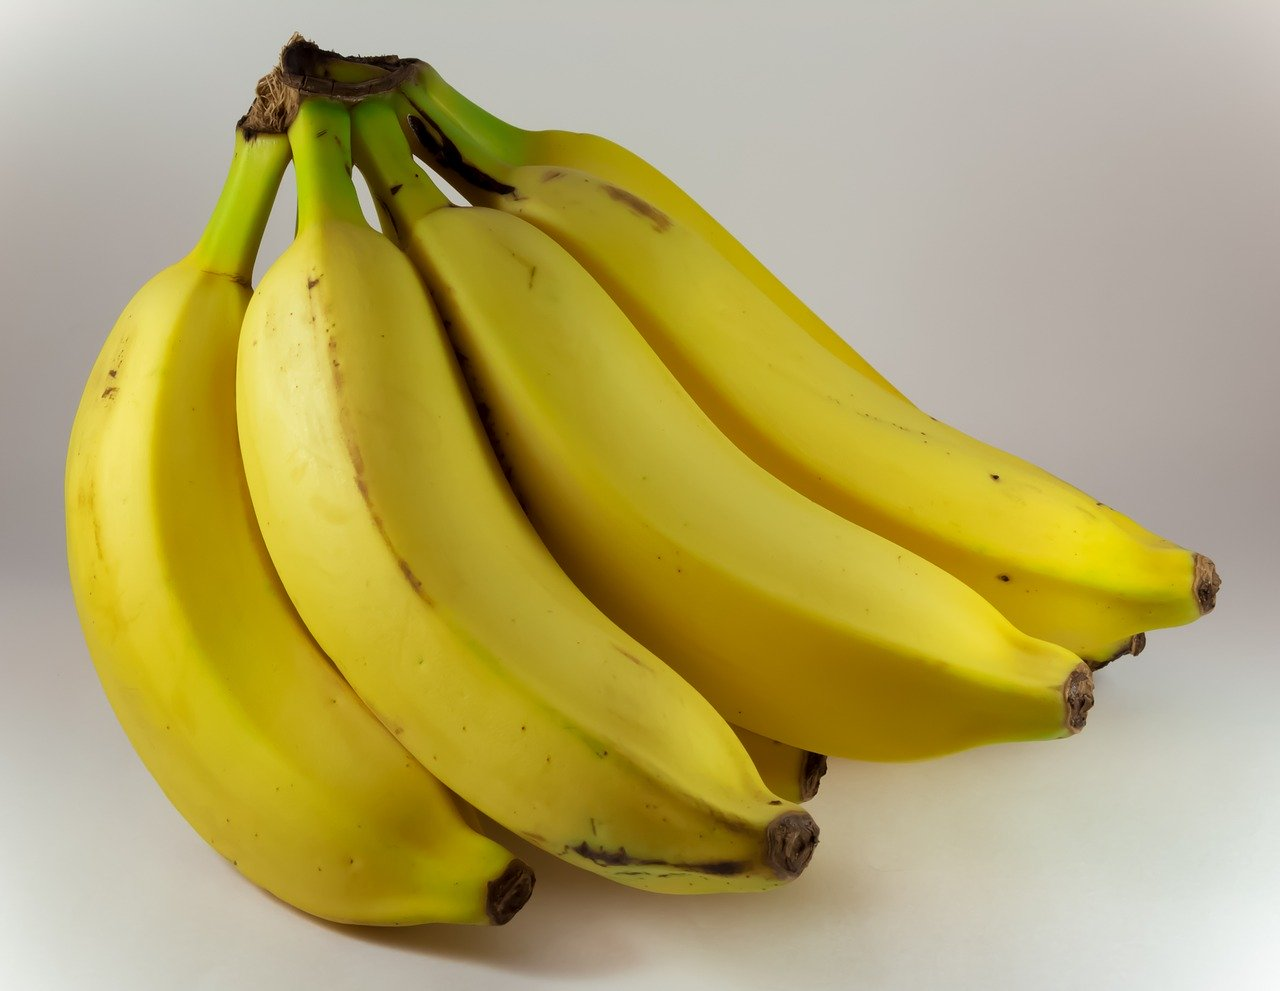 A bright yellow bunch of bananas